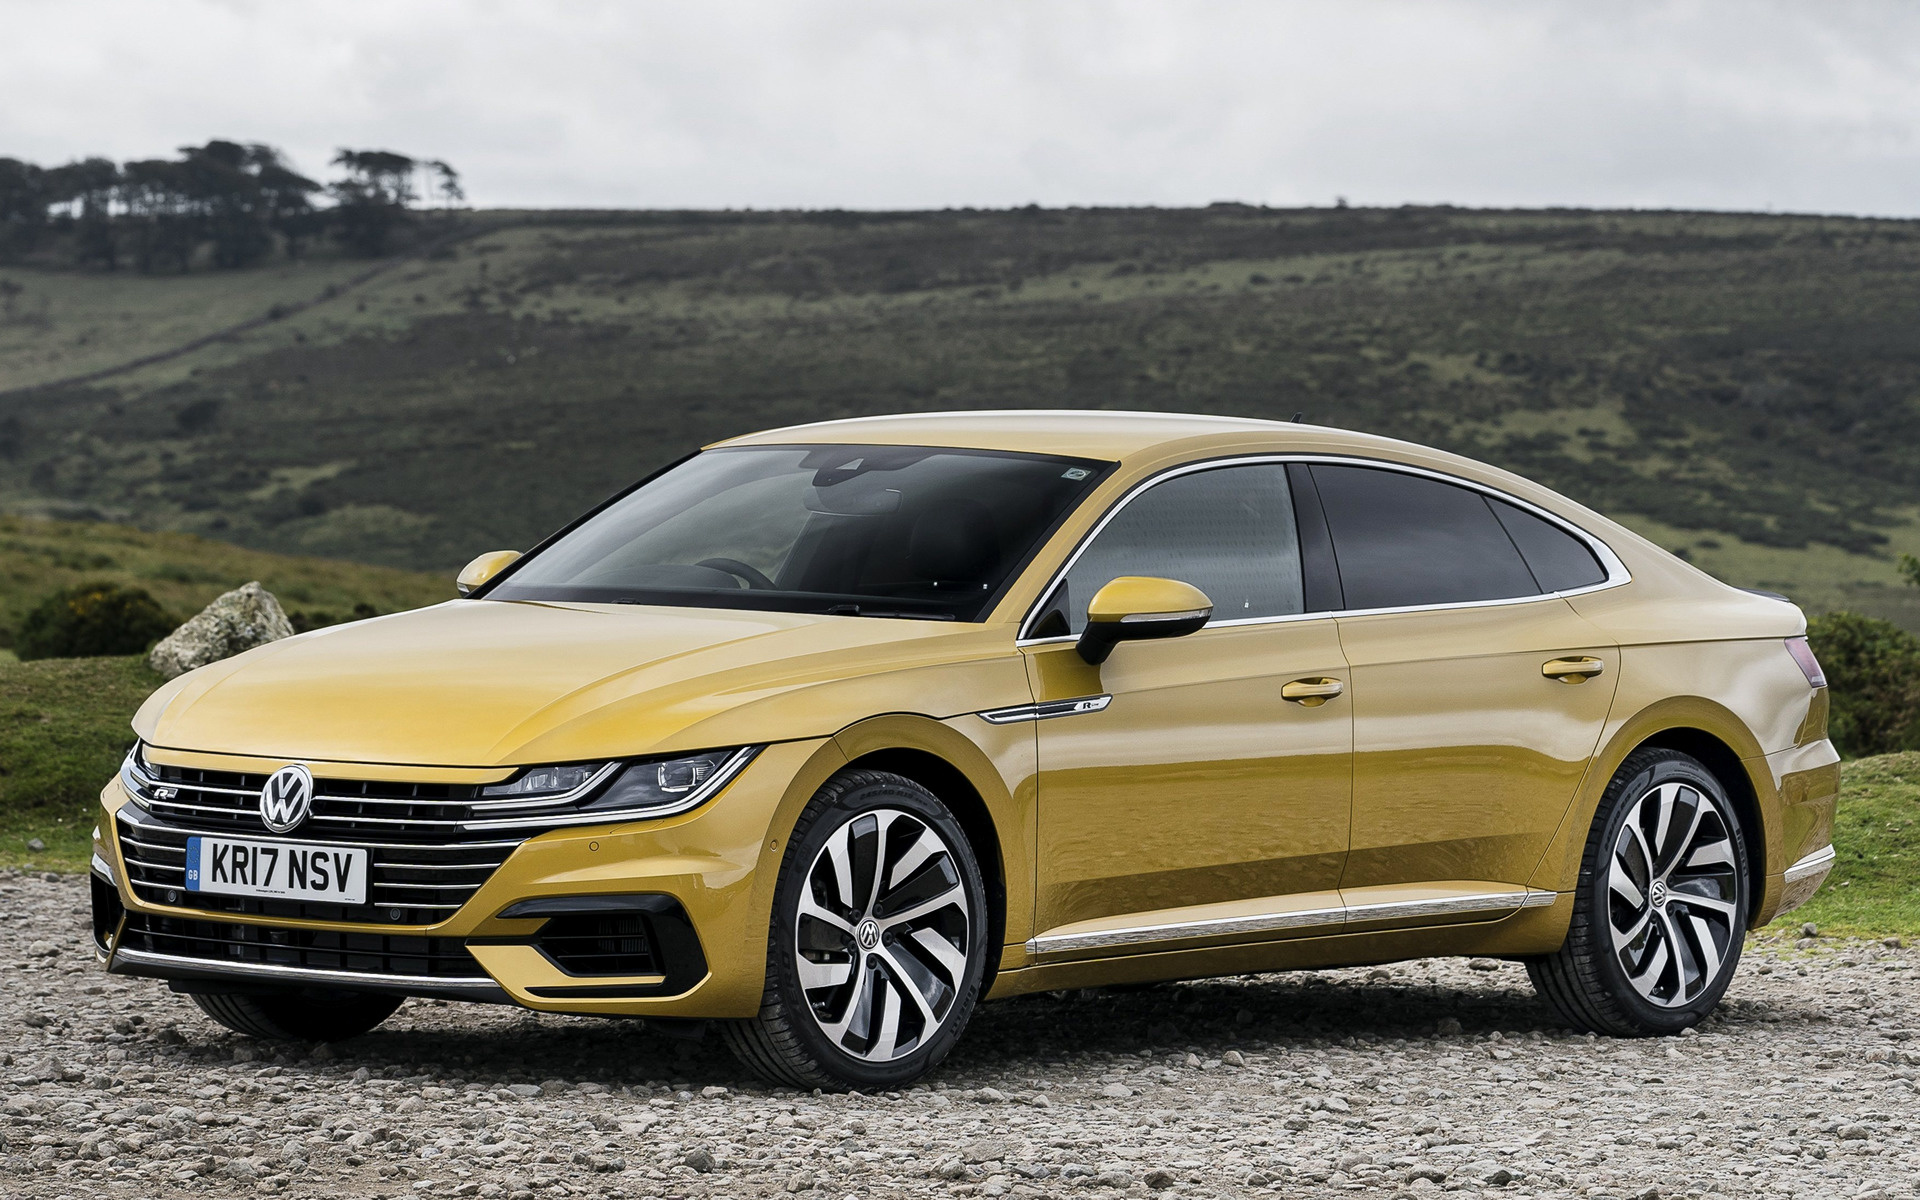 Mercedes Benz Coupe >> 2017 Volkswagen Arteon R-Line (UK) - Wallpapers and HD Images | Car Pixel